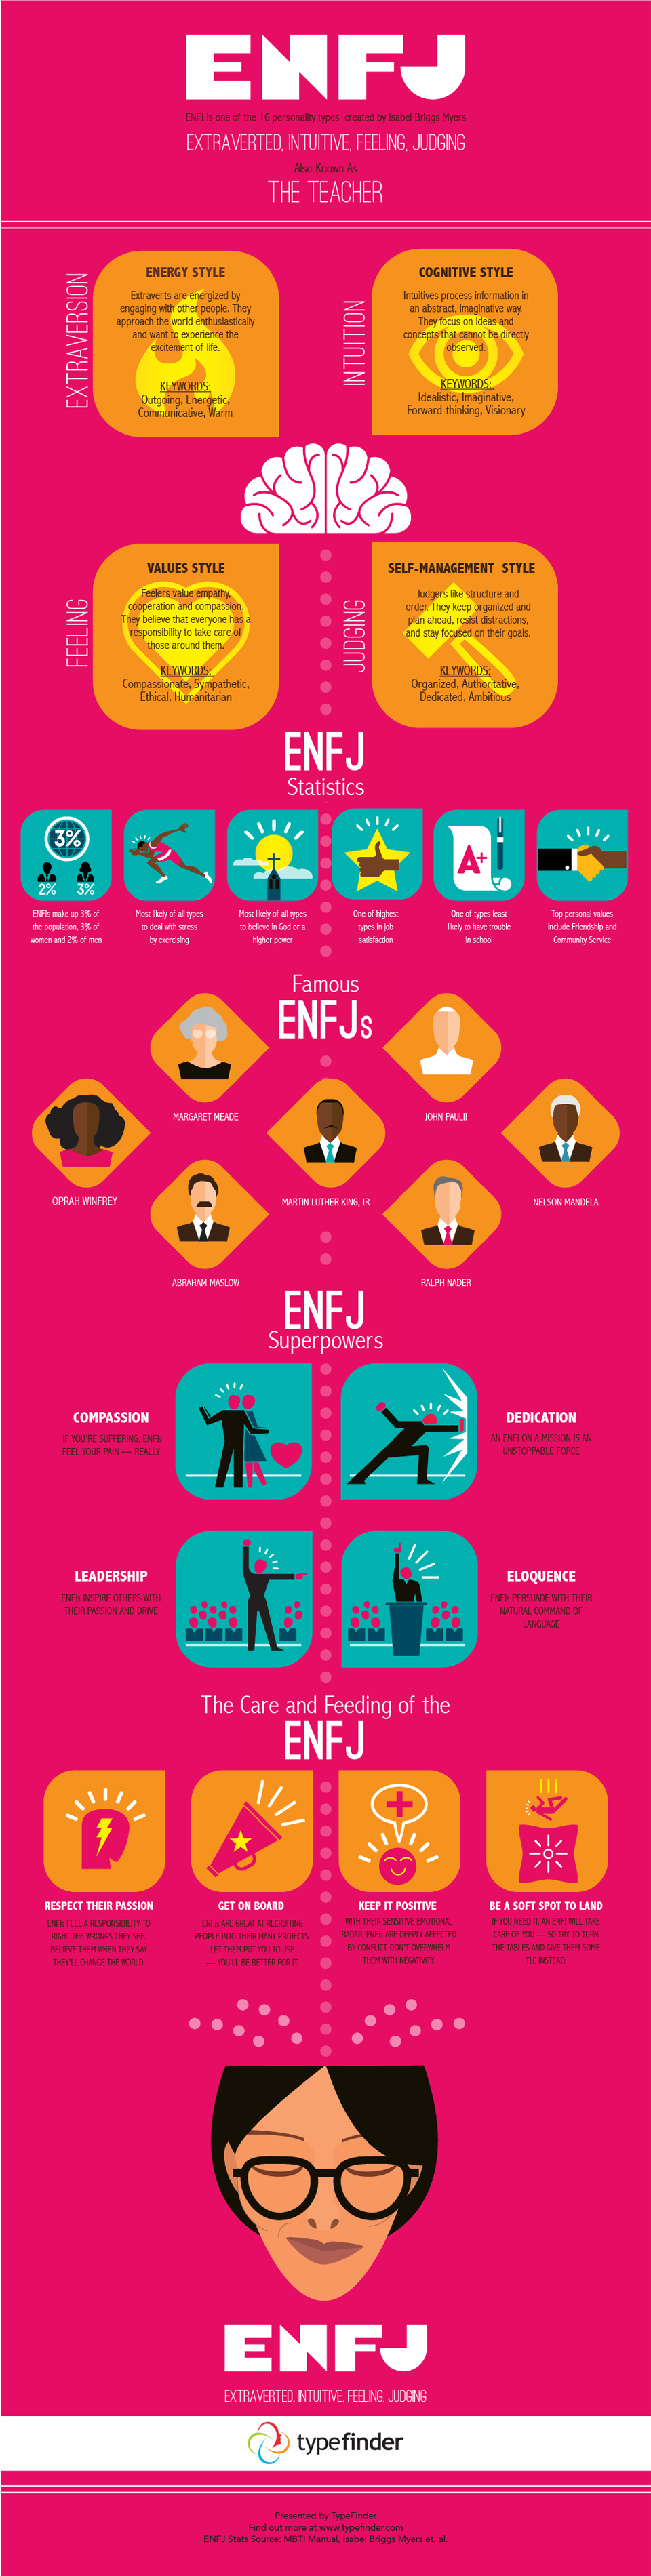 All About the ENFJ Personality Type